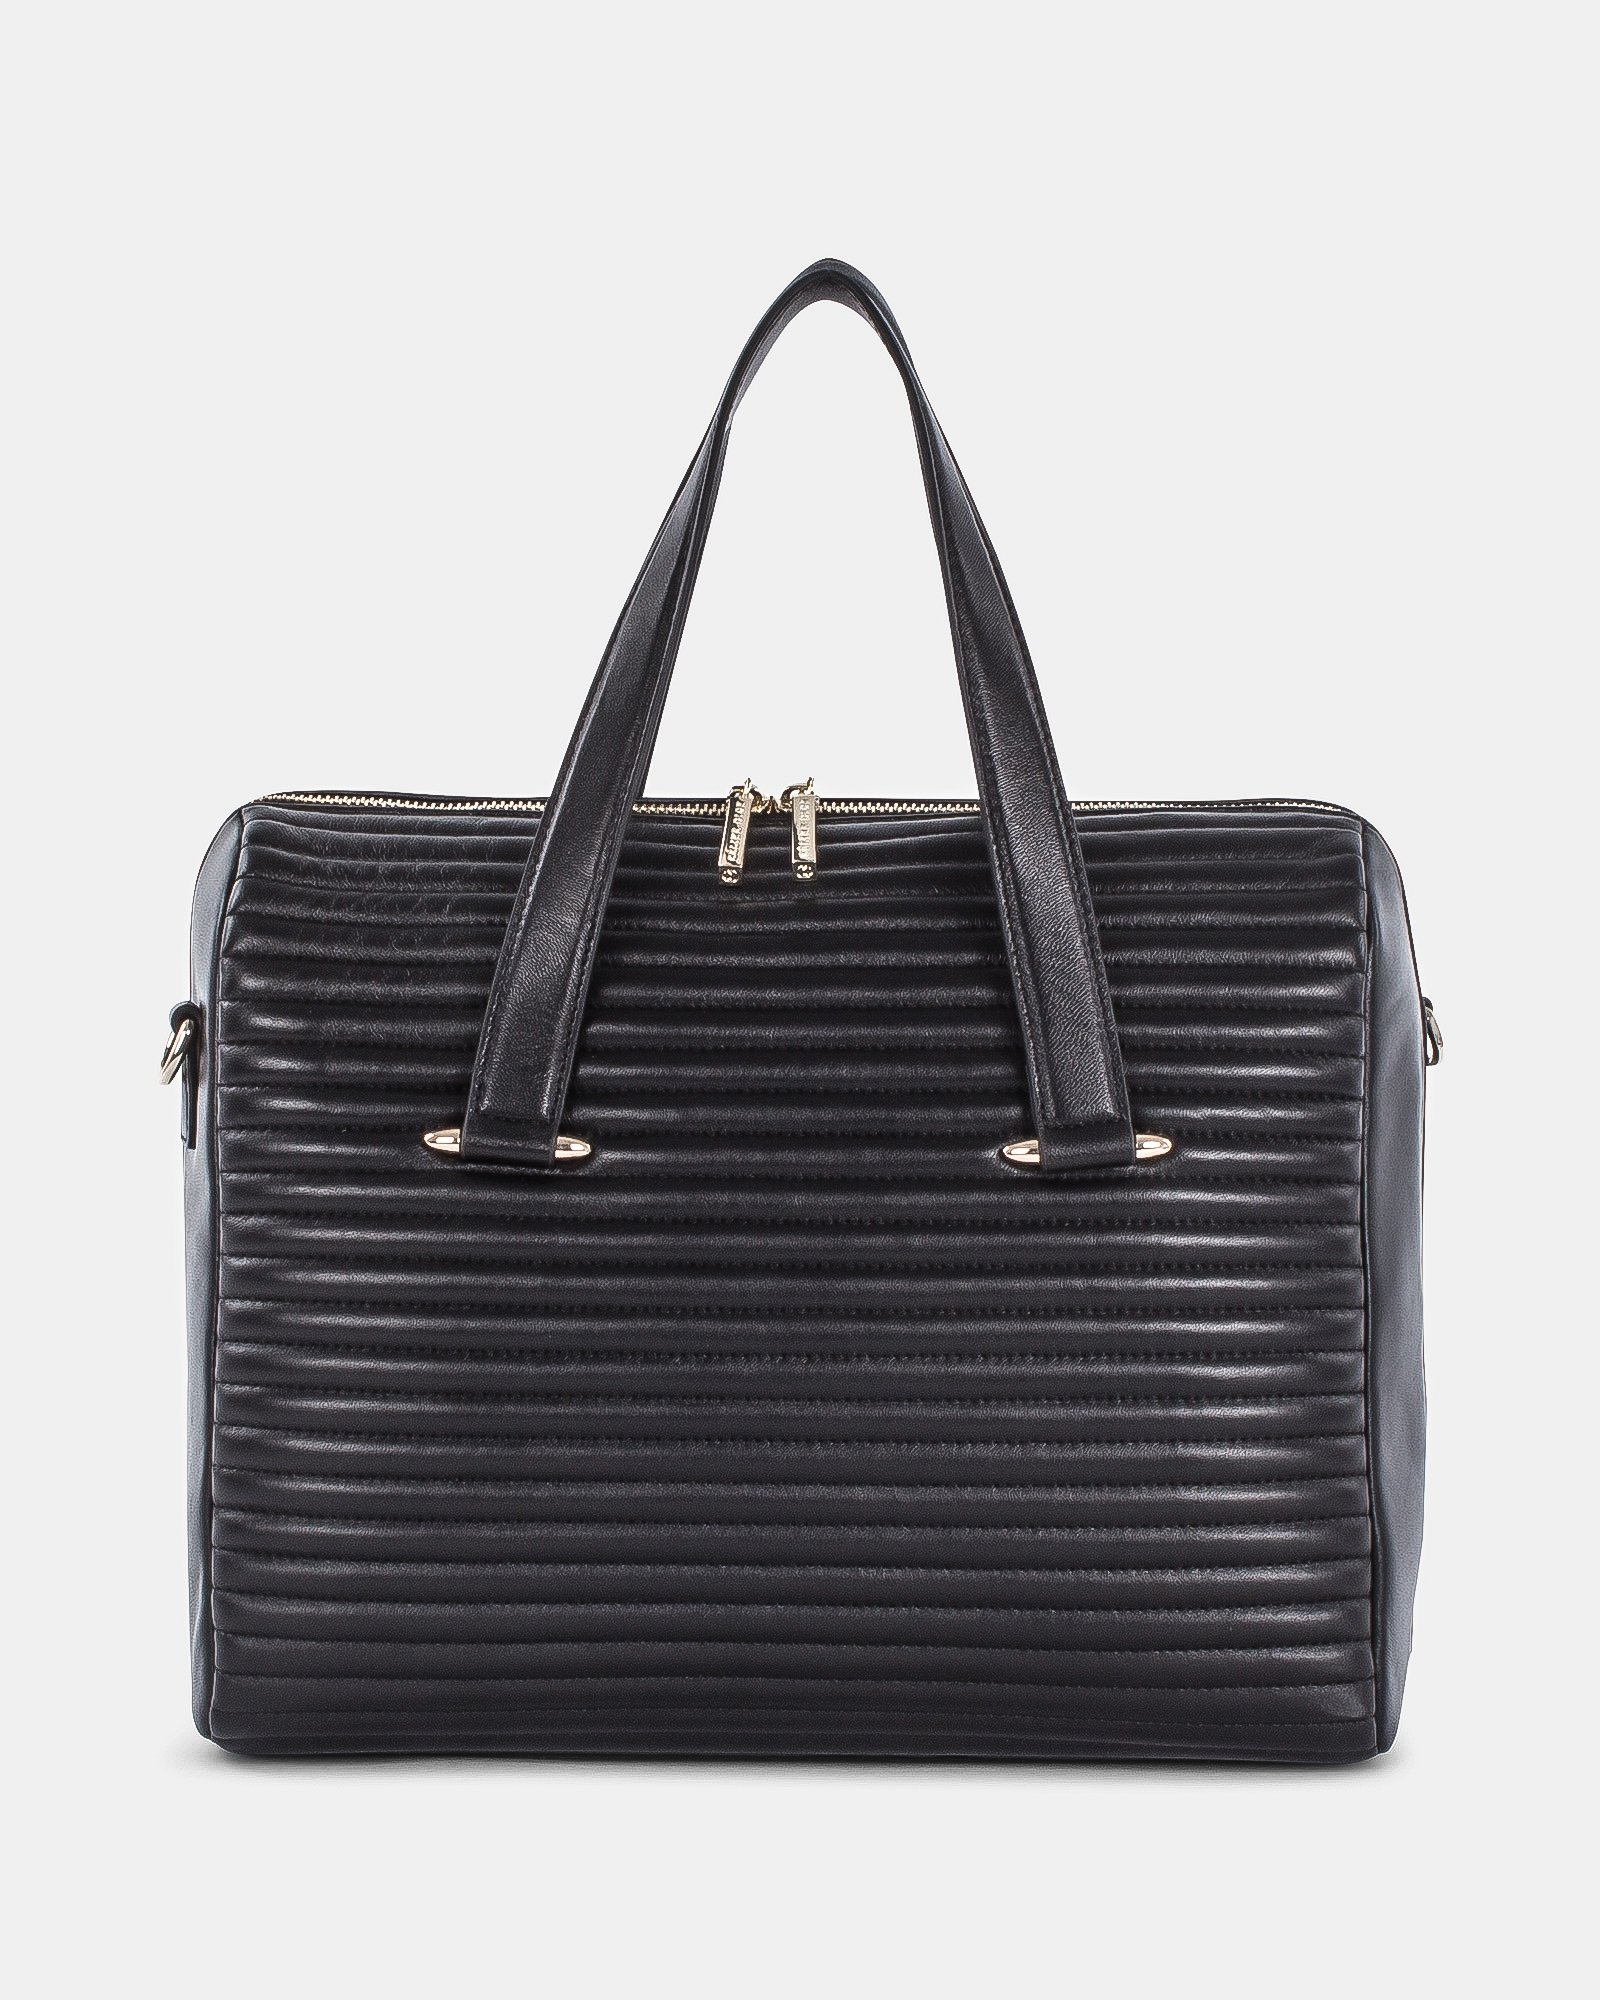 VIBRATO - LEATHER SATCHEL BAG with Adjustable and removable strap  - BLACK - Céline Dion - Zoom